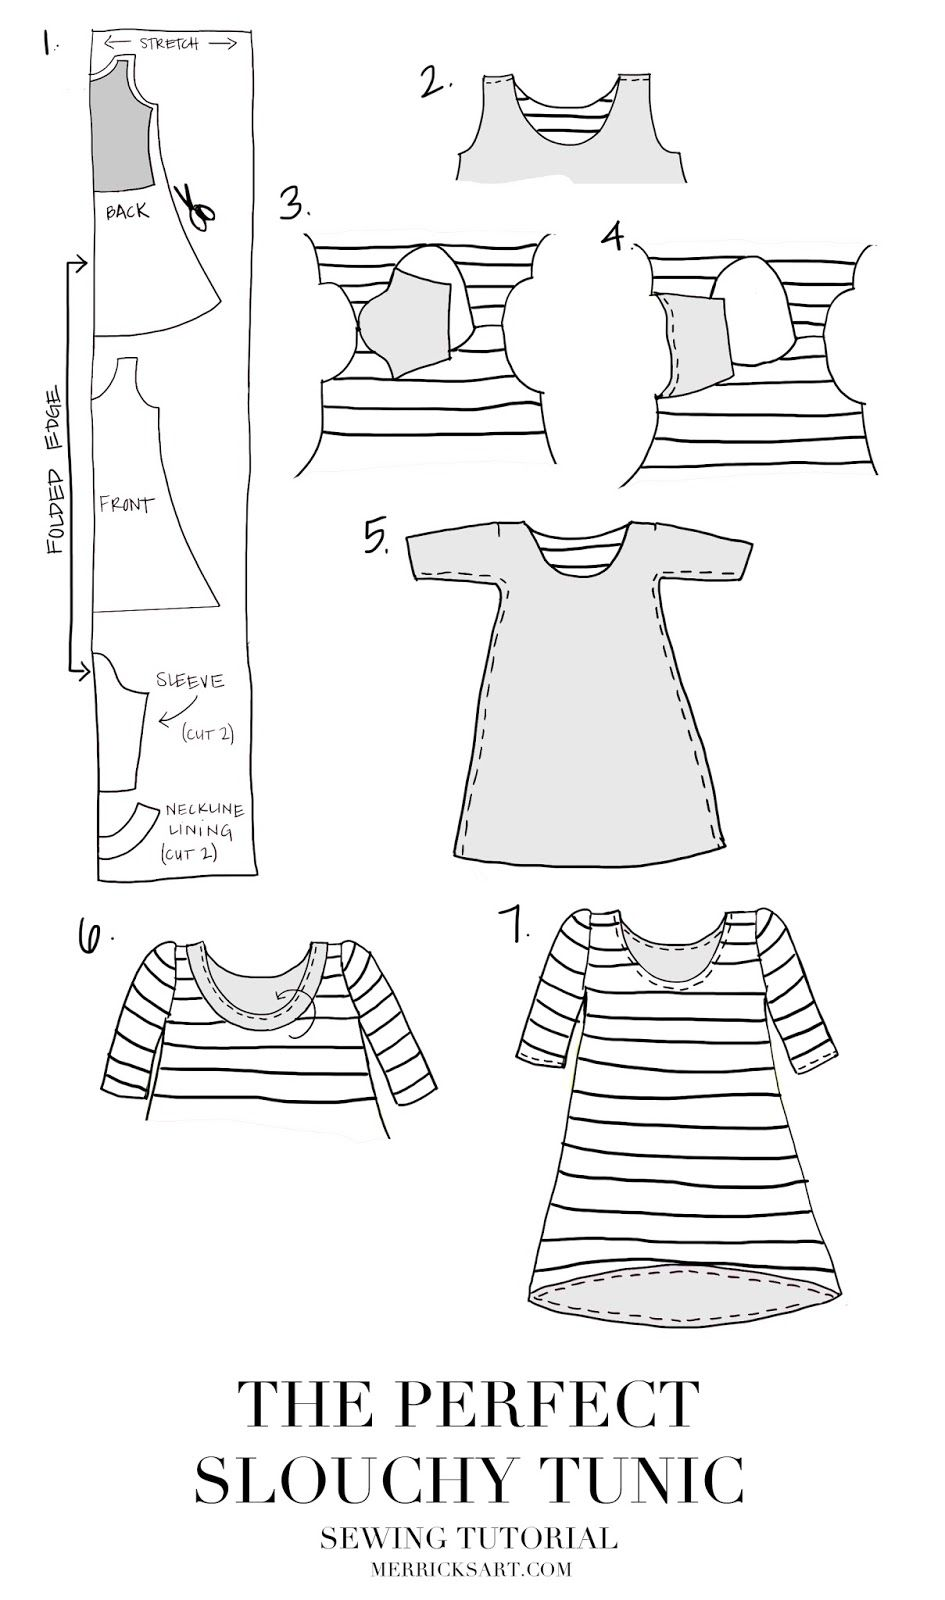 DIY FRIDAY: THE PERFECT SLOUCHY TUNIC [SEWING TUTORIAL